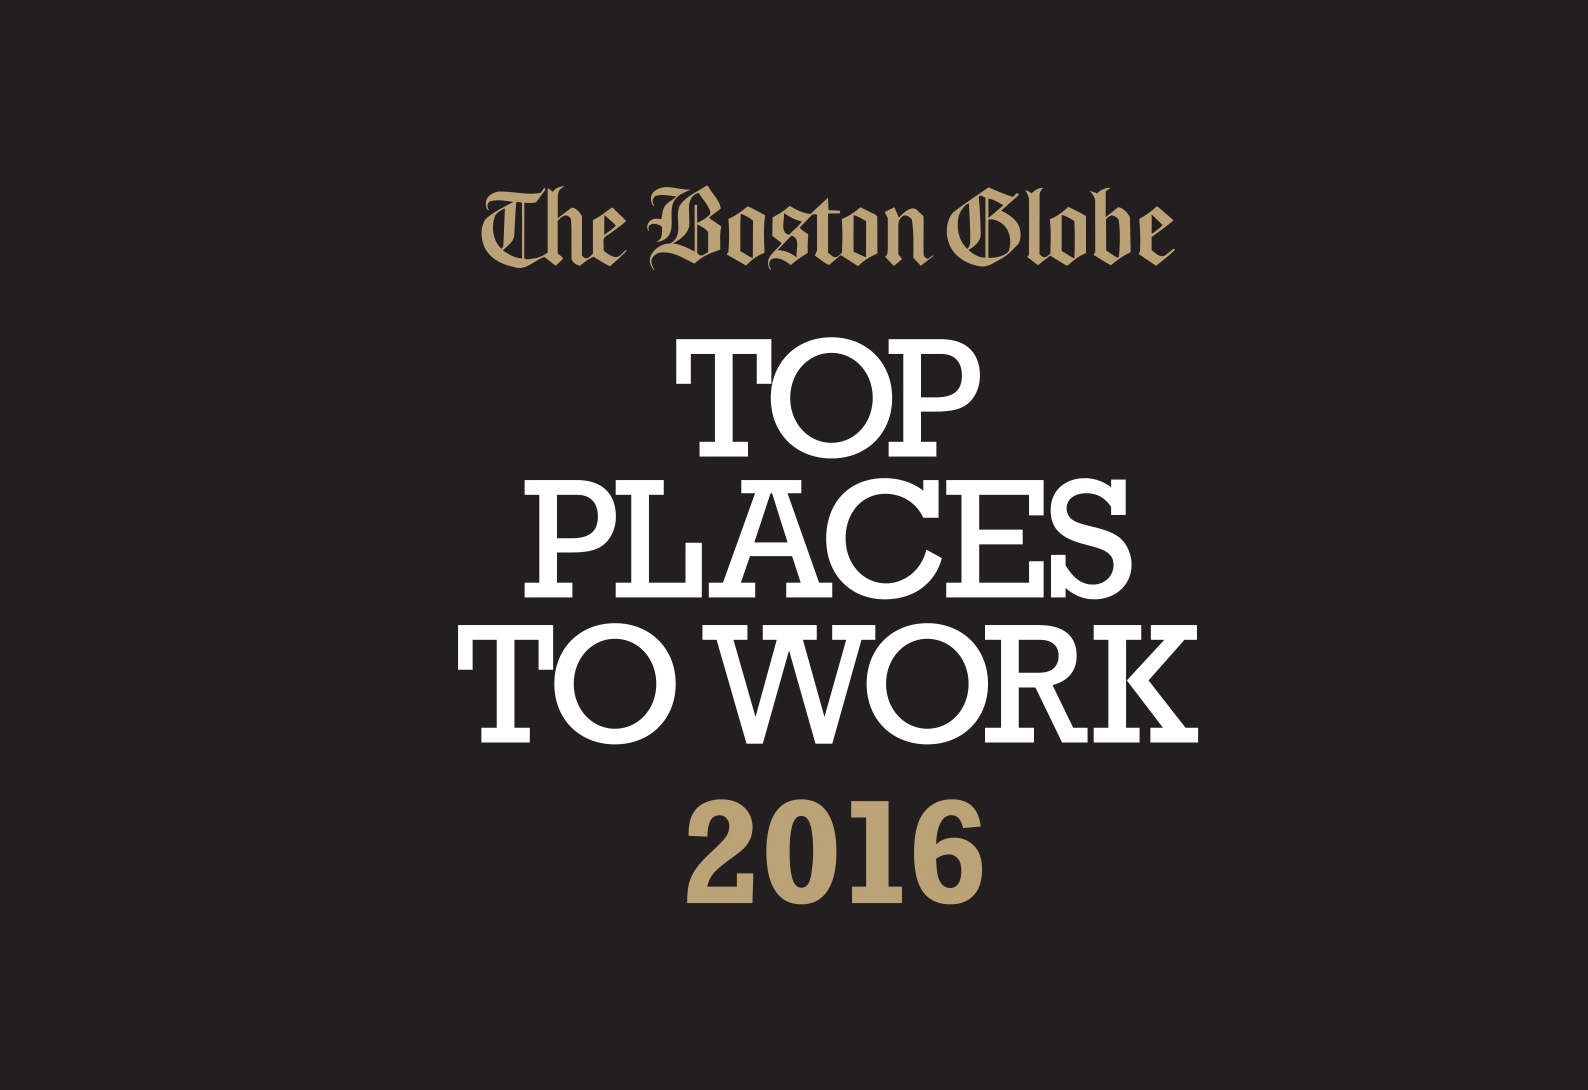 JRI was named a top place to work in 2016 by the Boston Globe